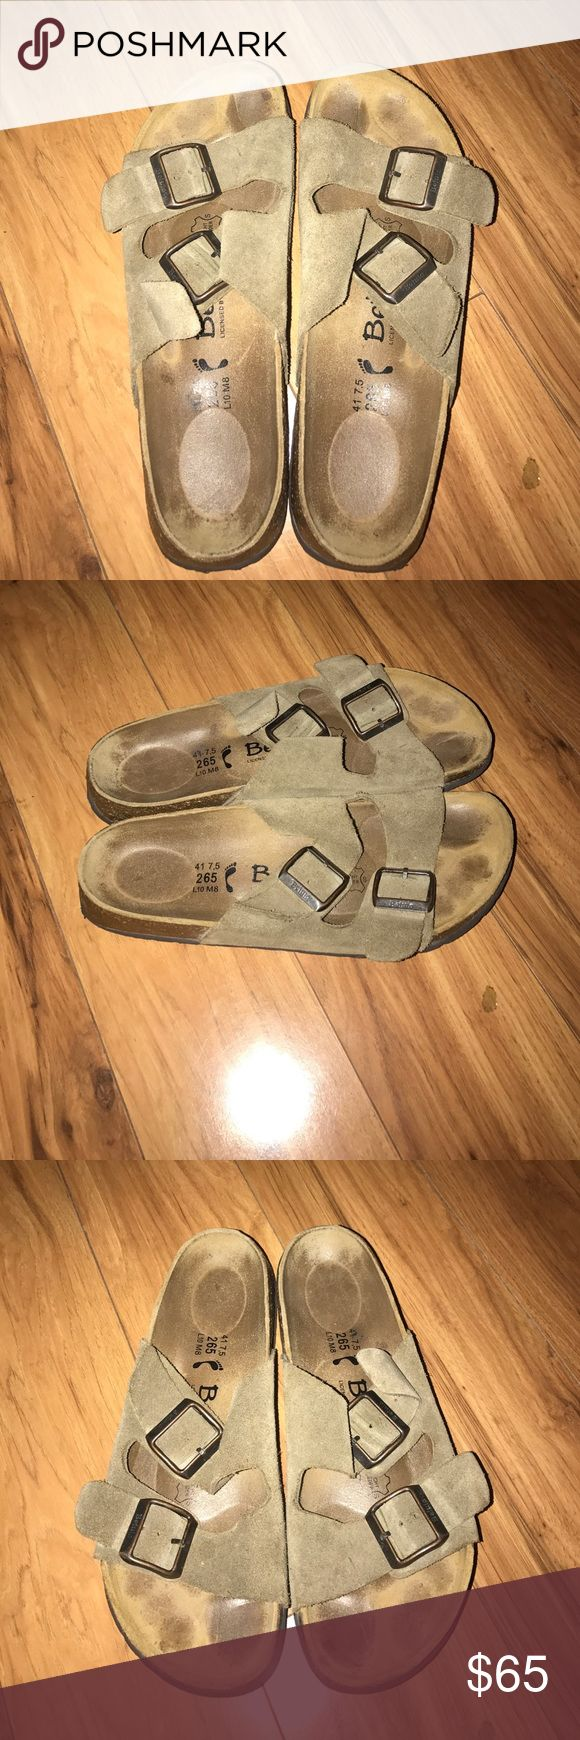 Betula Sandals by Birkenstock Betula Sandals by Birkenstock- Size Ladies 10, Men 8, in Great condition, only worn a handful of times. betula Shoes Sandals